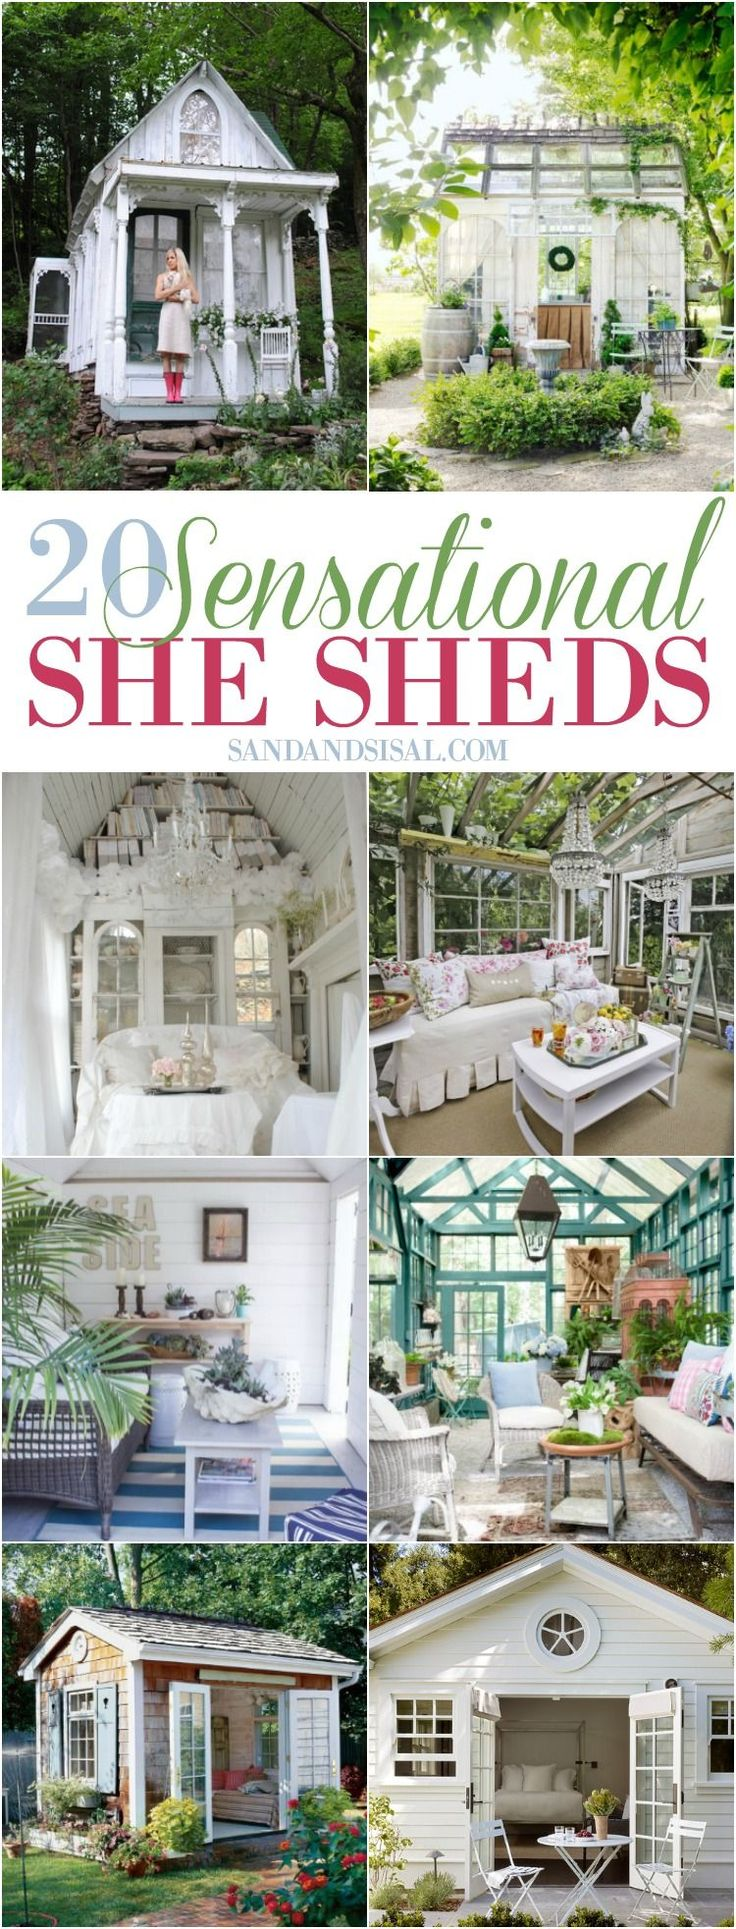 20 Sensational She Shed Ideas.  If you need a little extra space for storage or a lot of extra space for an office, guest room or studio, a shed could be the perfect solution. - ad